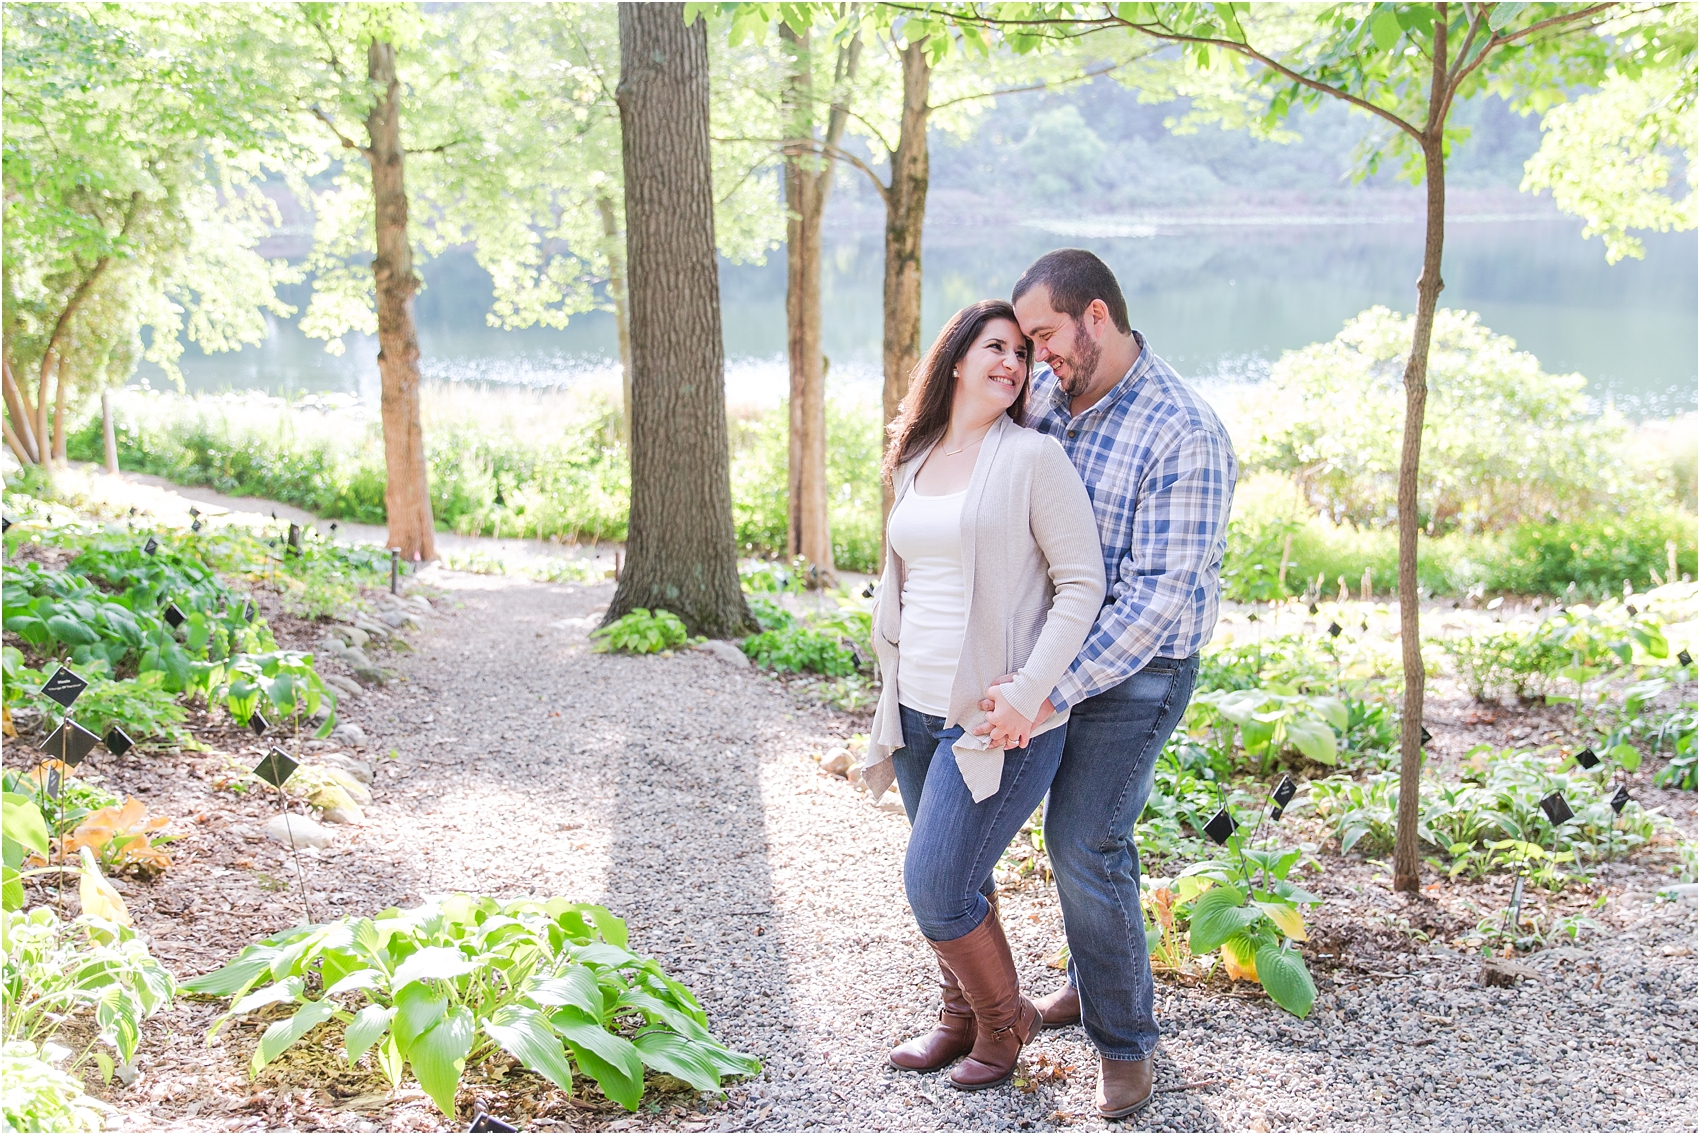 candid-romantic-summer-engagement-photos-at-hidden-lake-gardens-and-black-fire-winery-in-tipton-mi-by-courtney-carolyn-photography_0027.jpg